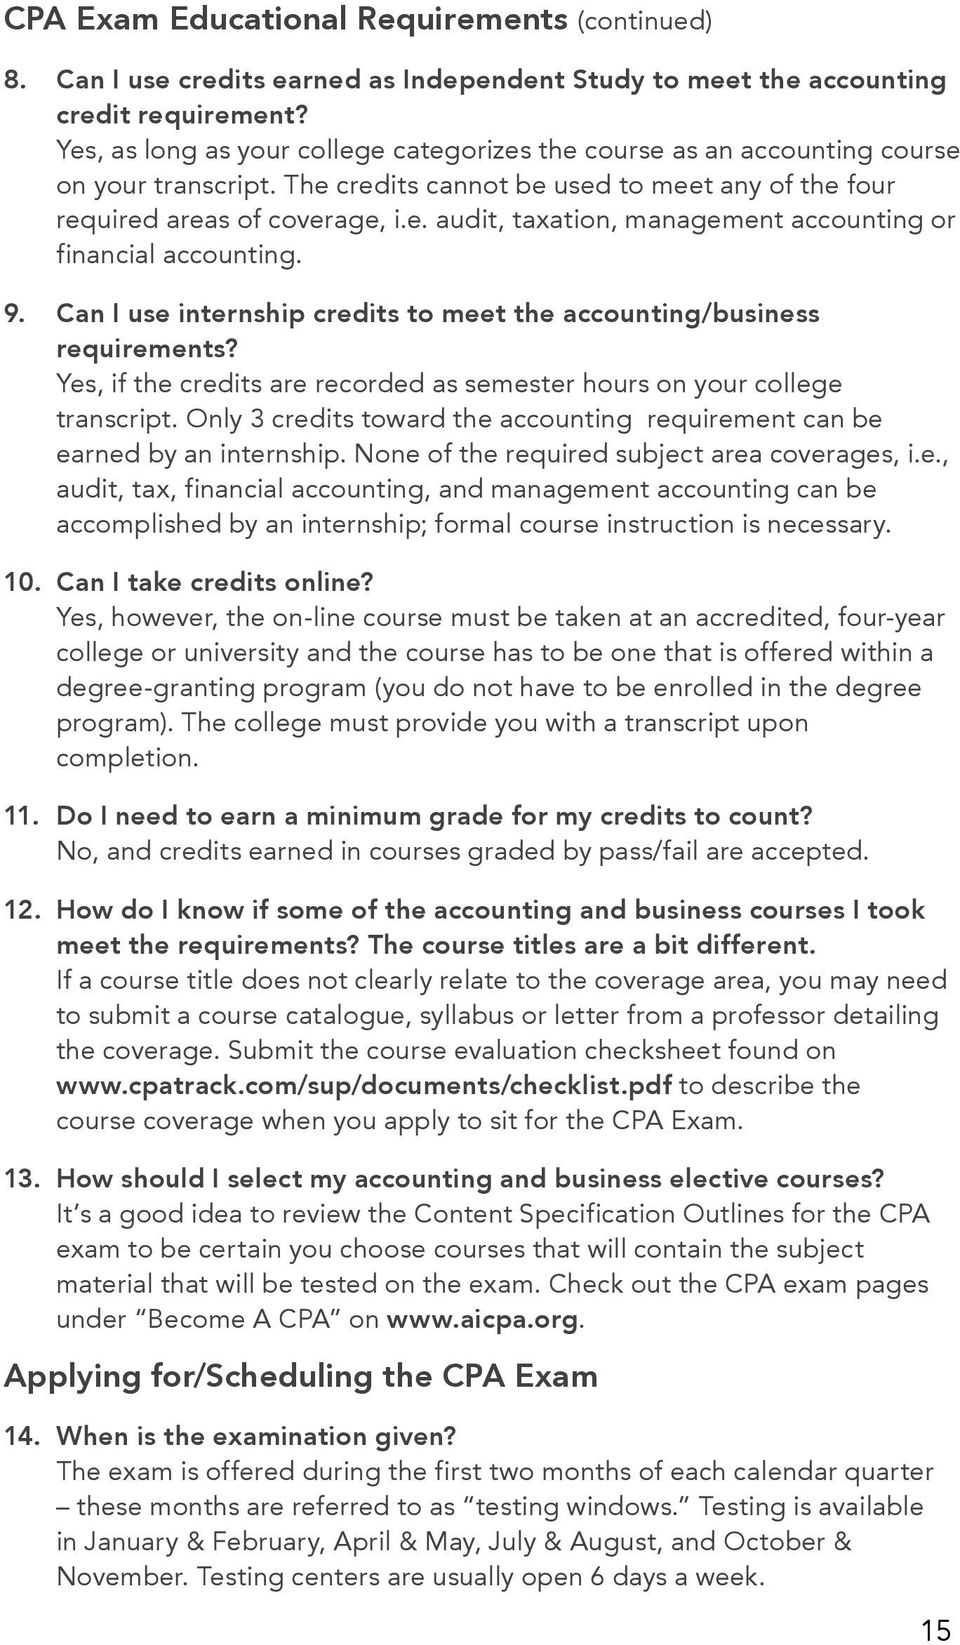 9. Can I use internship credits to meet the accounting/business requirements? Yes, if the credits are recorded as semester hours on your college transcript.